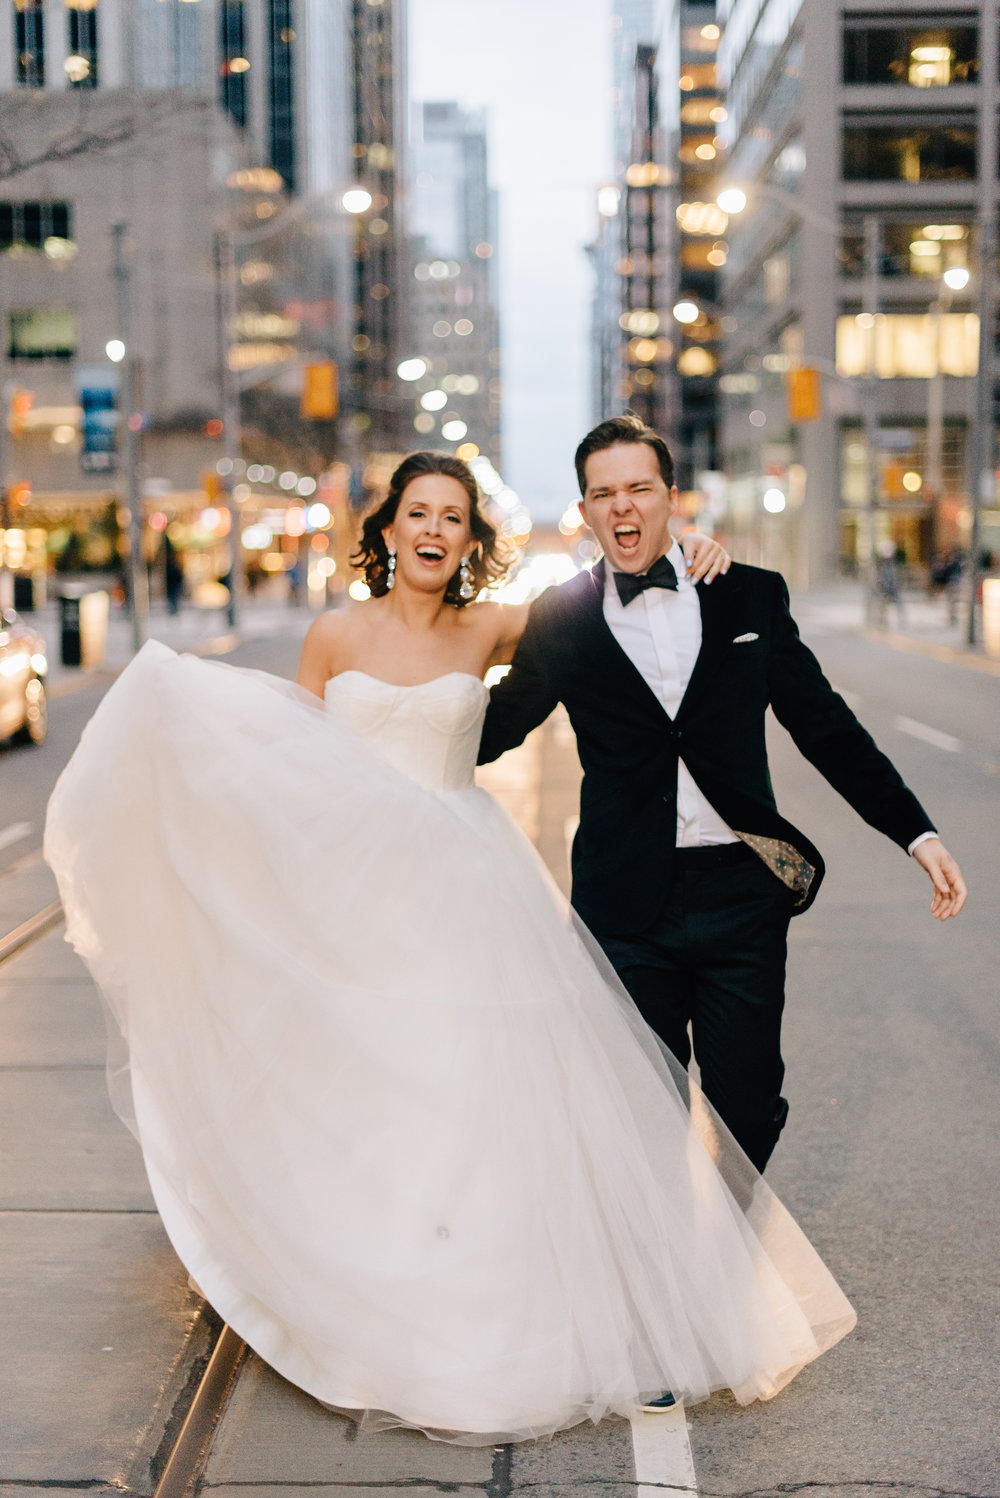 Toronto Wedding Photographer - Sara Monika, Photographer